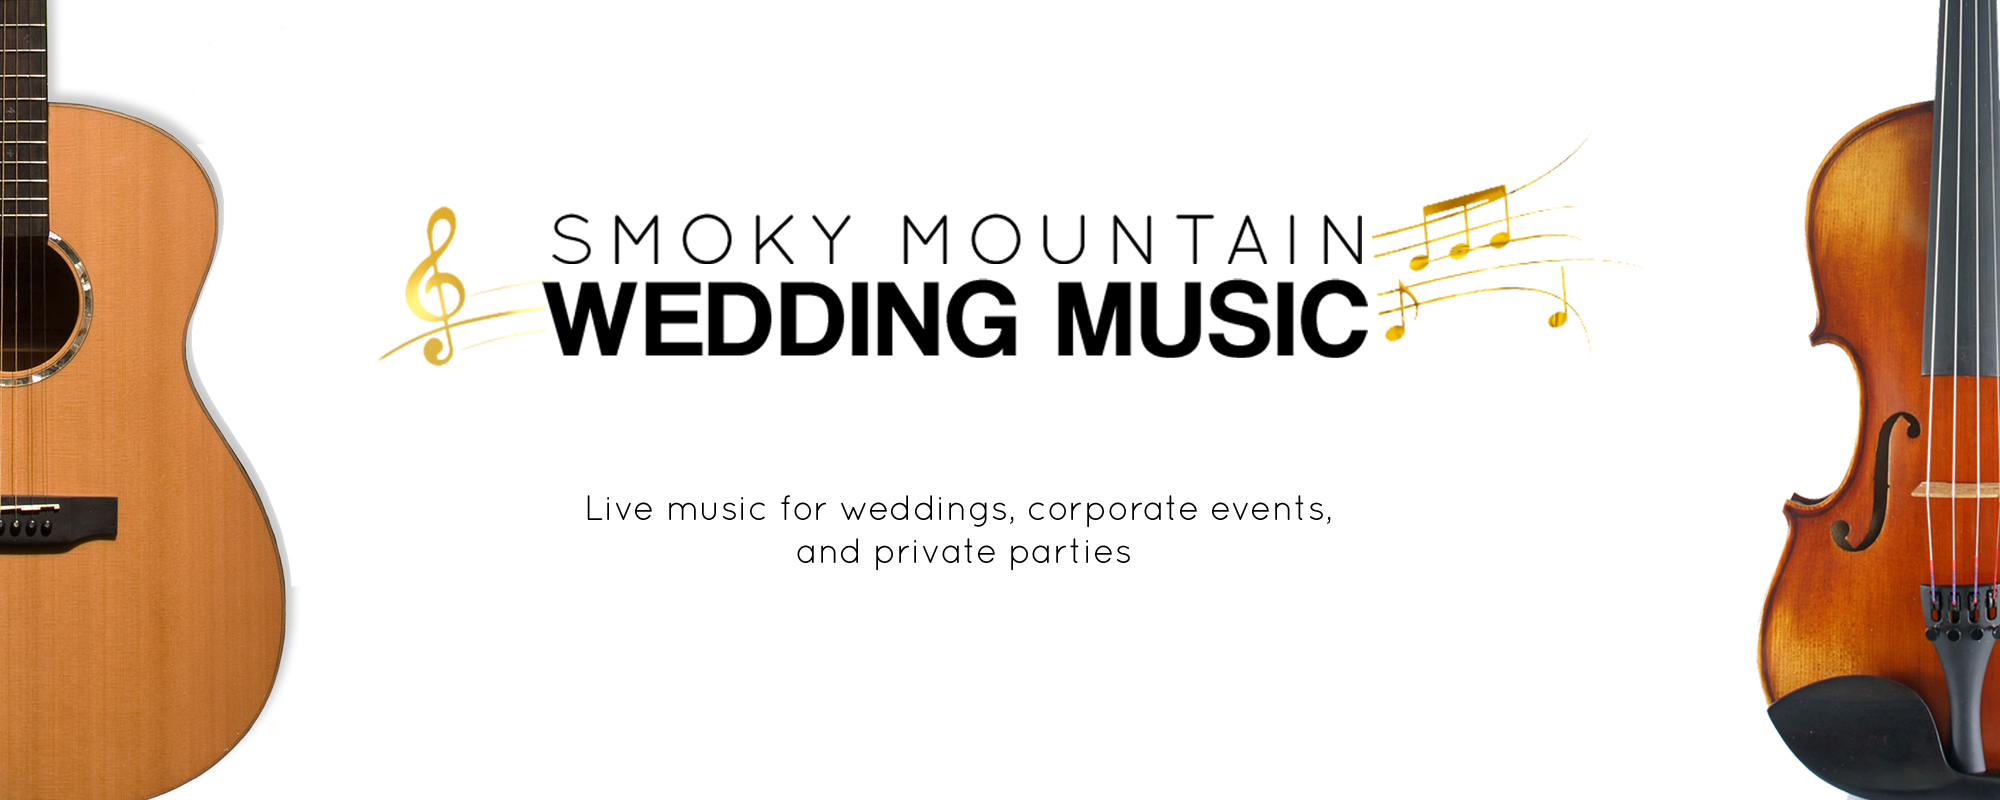 Smoky Mountain Wedding Music